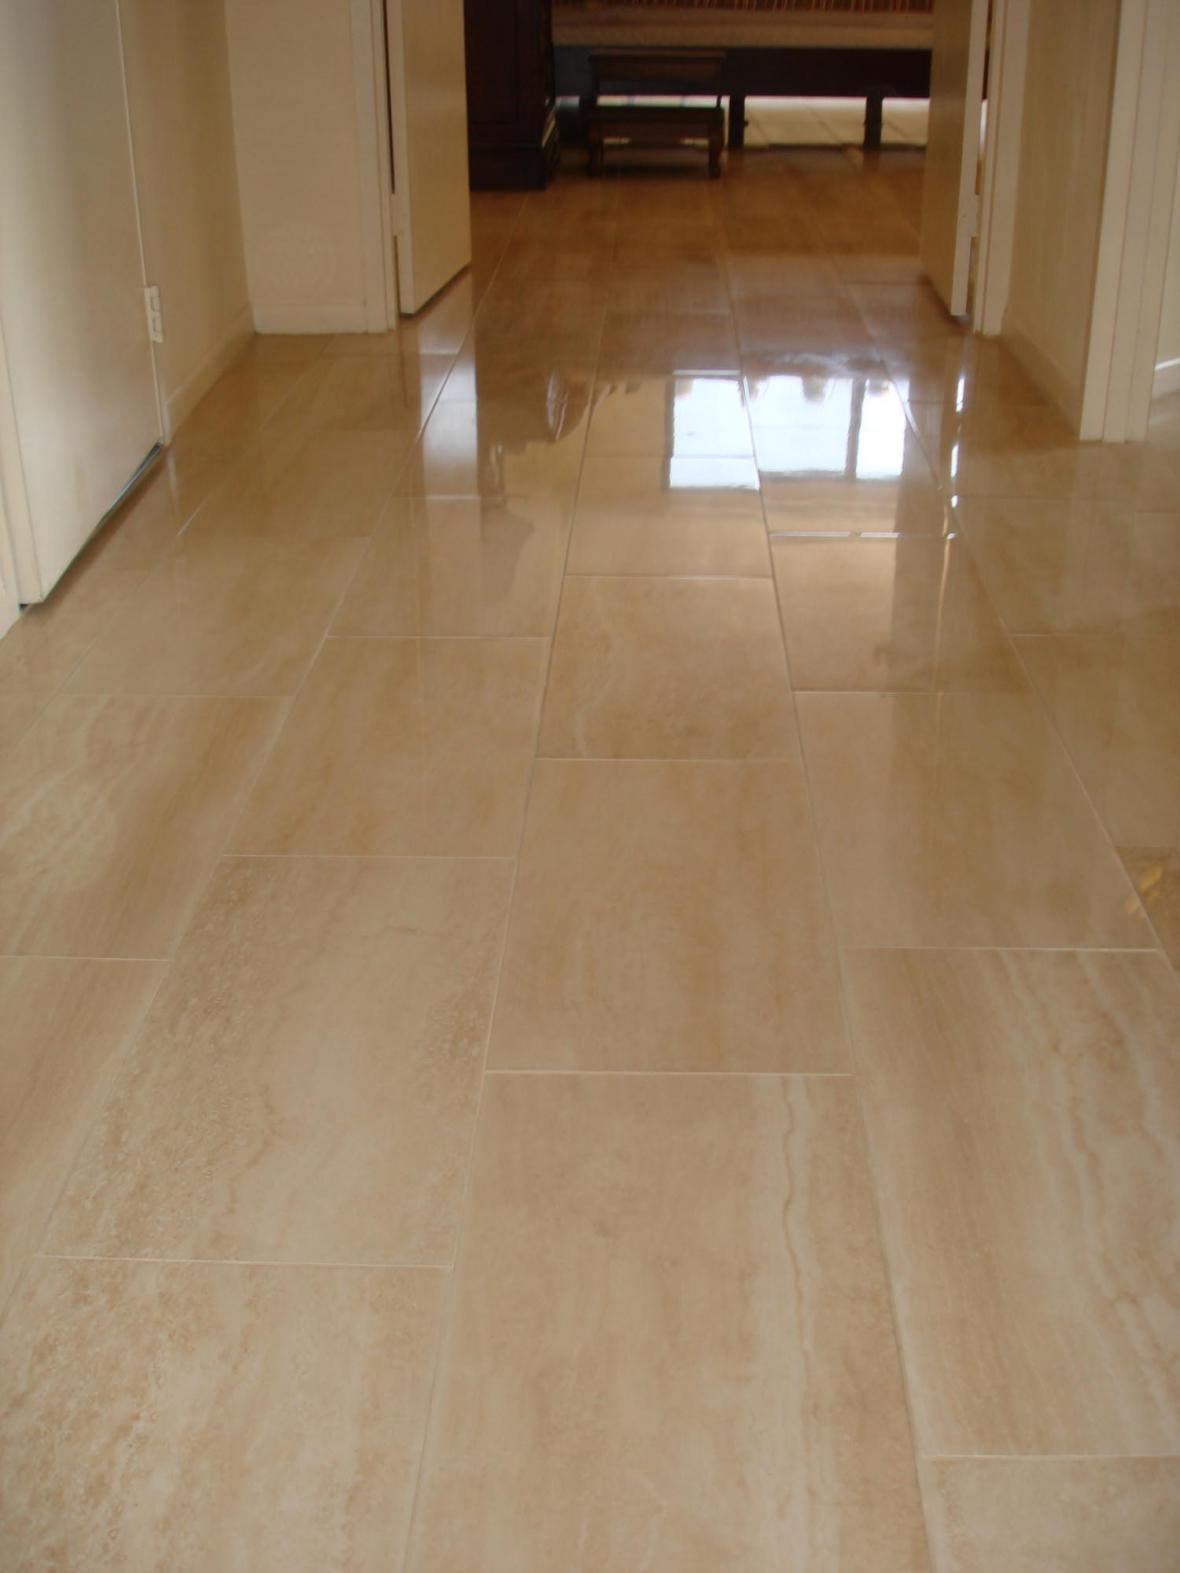 Porcelain Tile Floor In Hallway Porcelain Tile Wooden Ceramic Tile